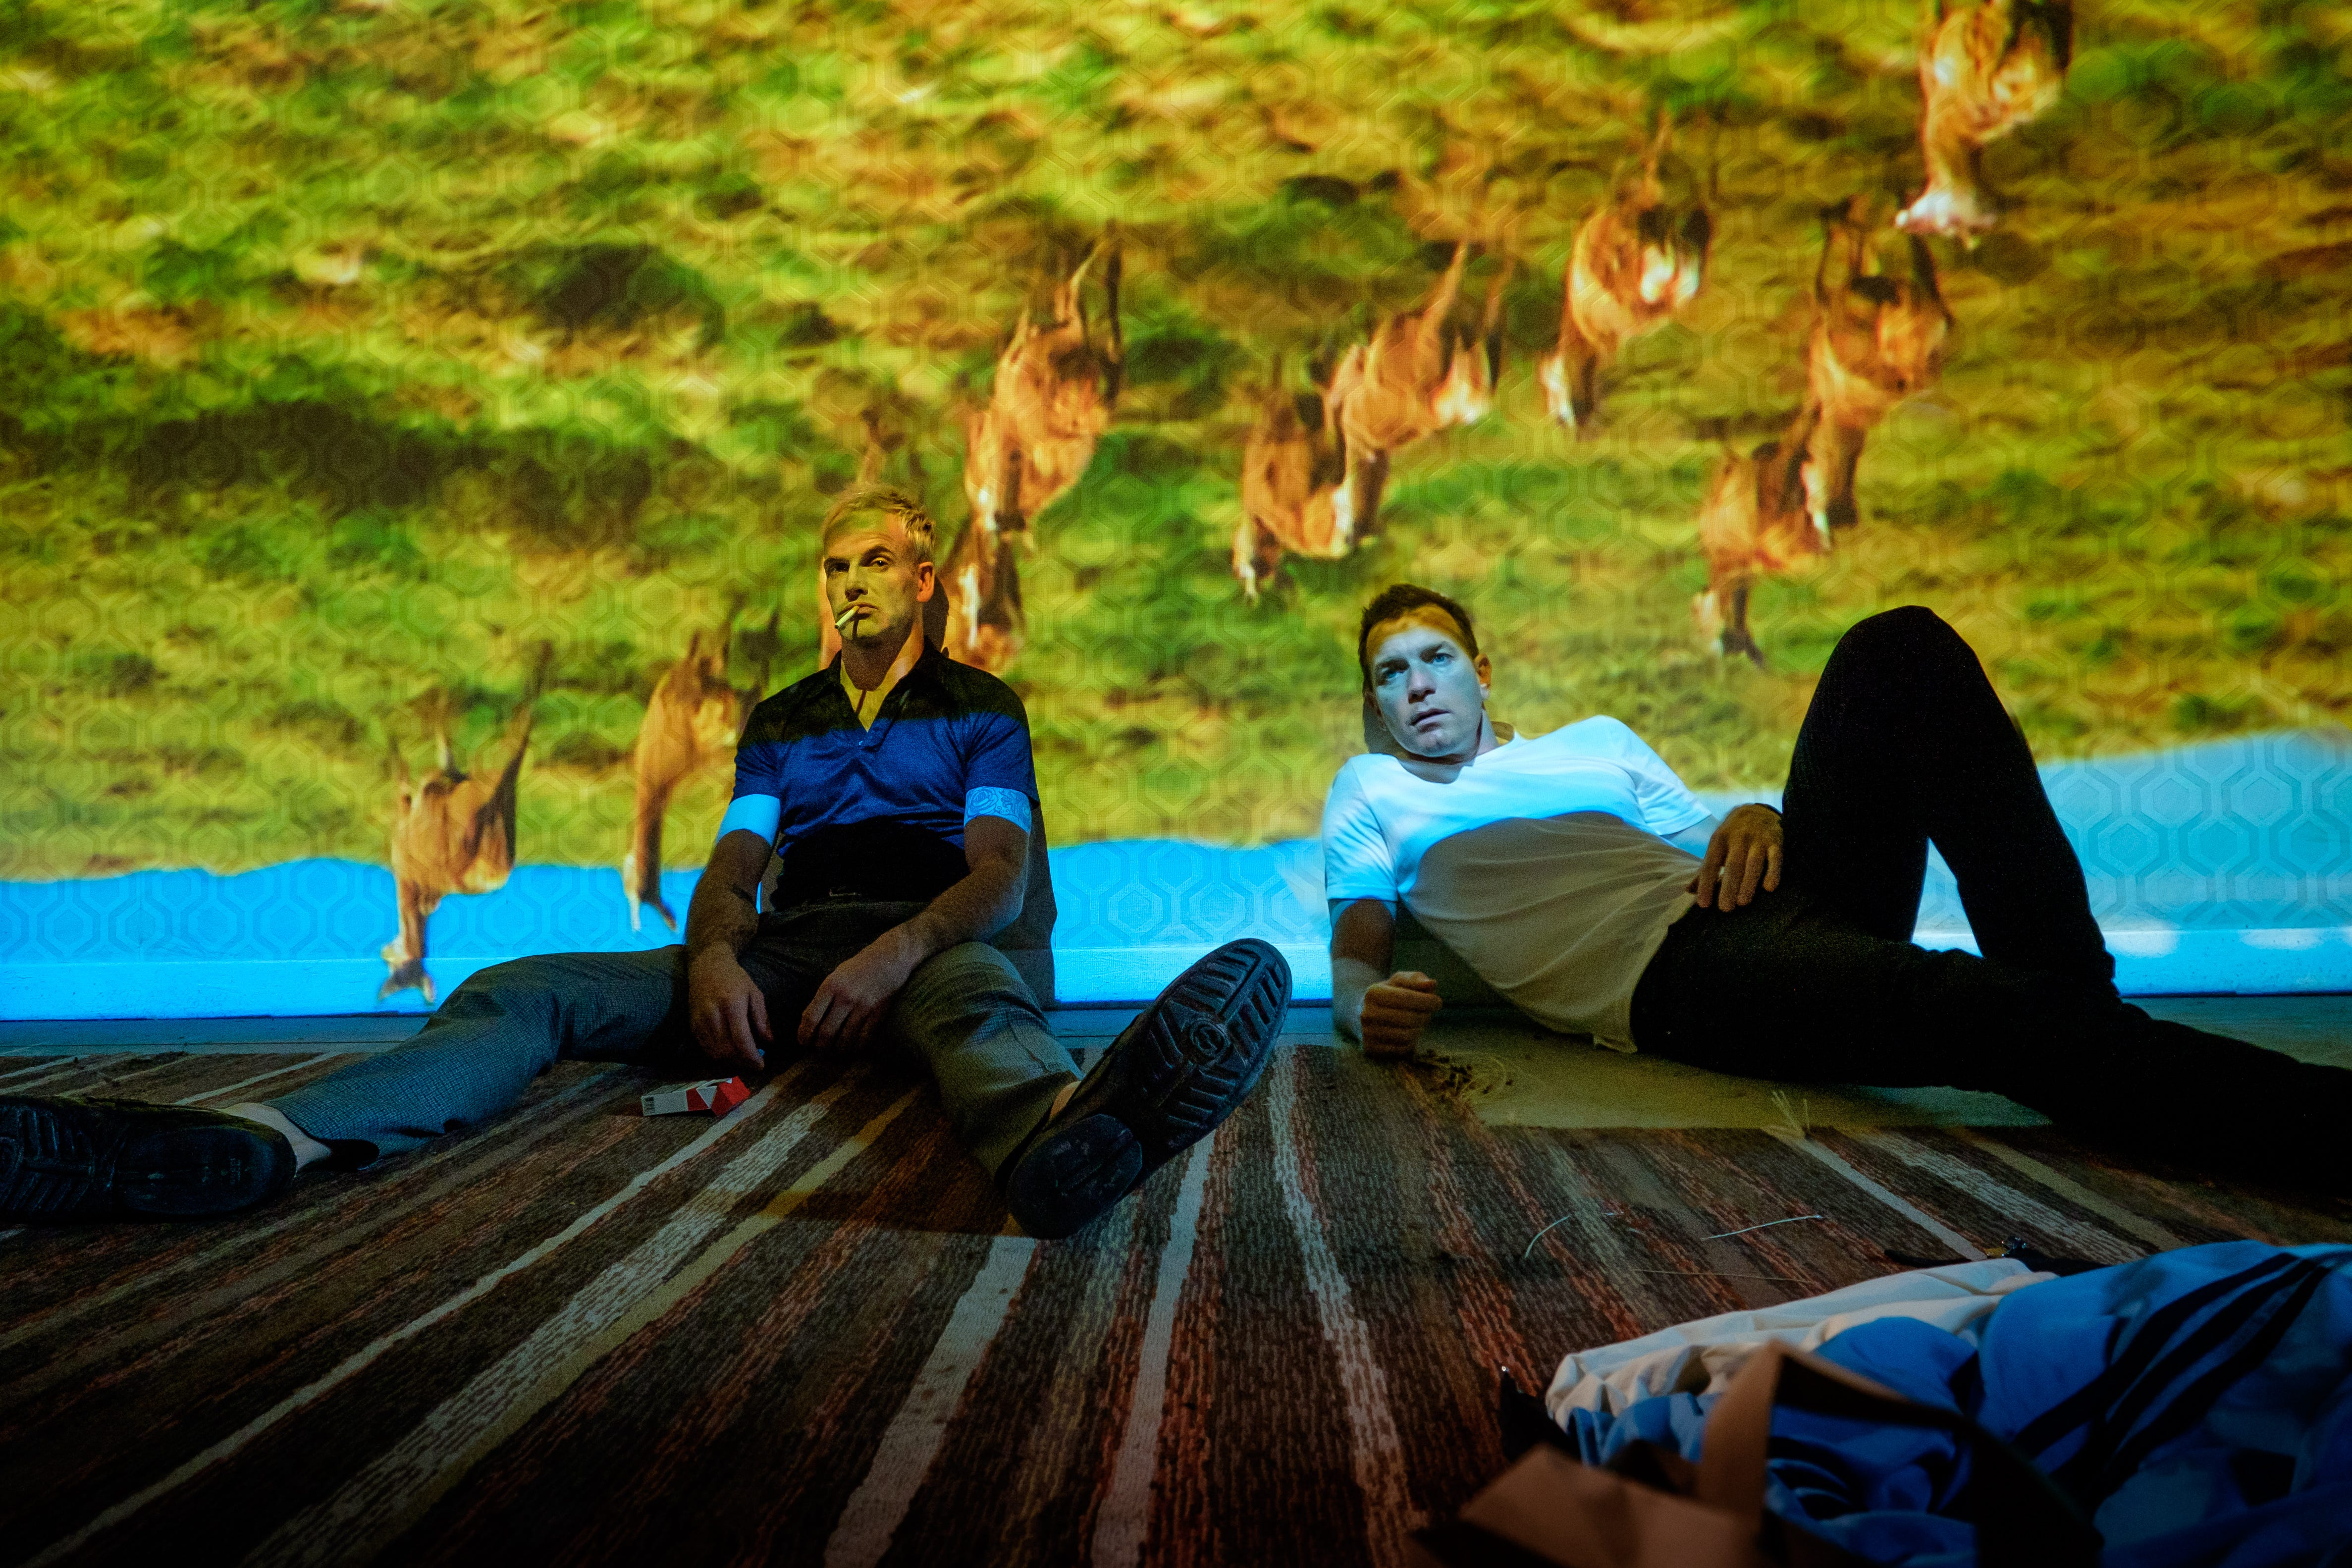 Why Danny Boyle Wants a 'Trainspotting' Spinoff Over a Third Film